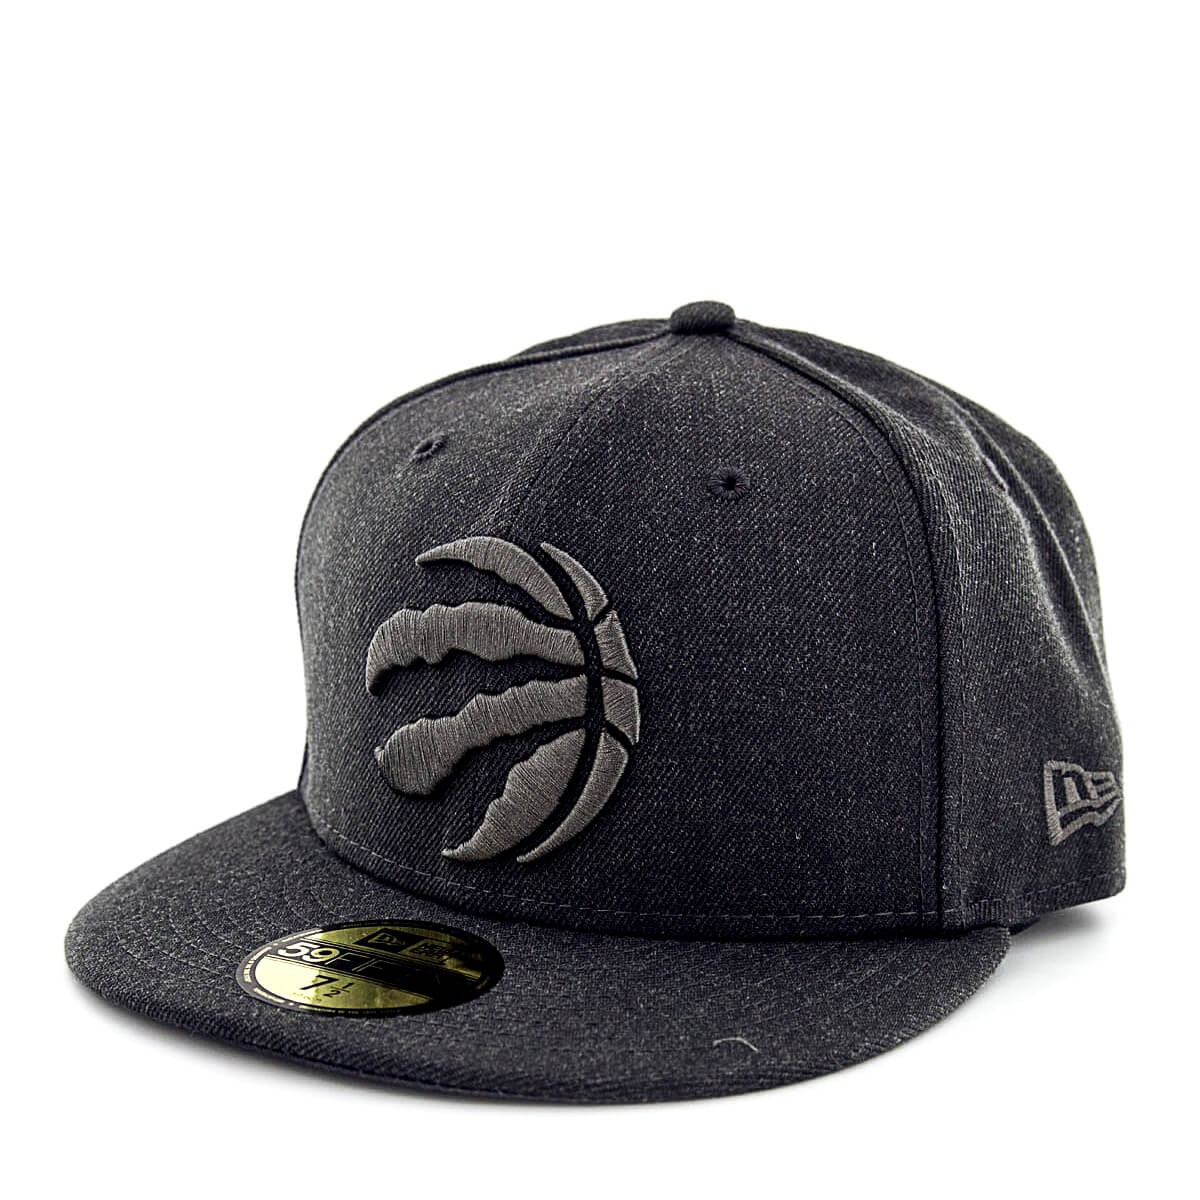 New Era Cap 59Fifty Torrap Antra